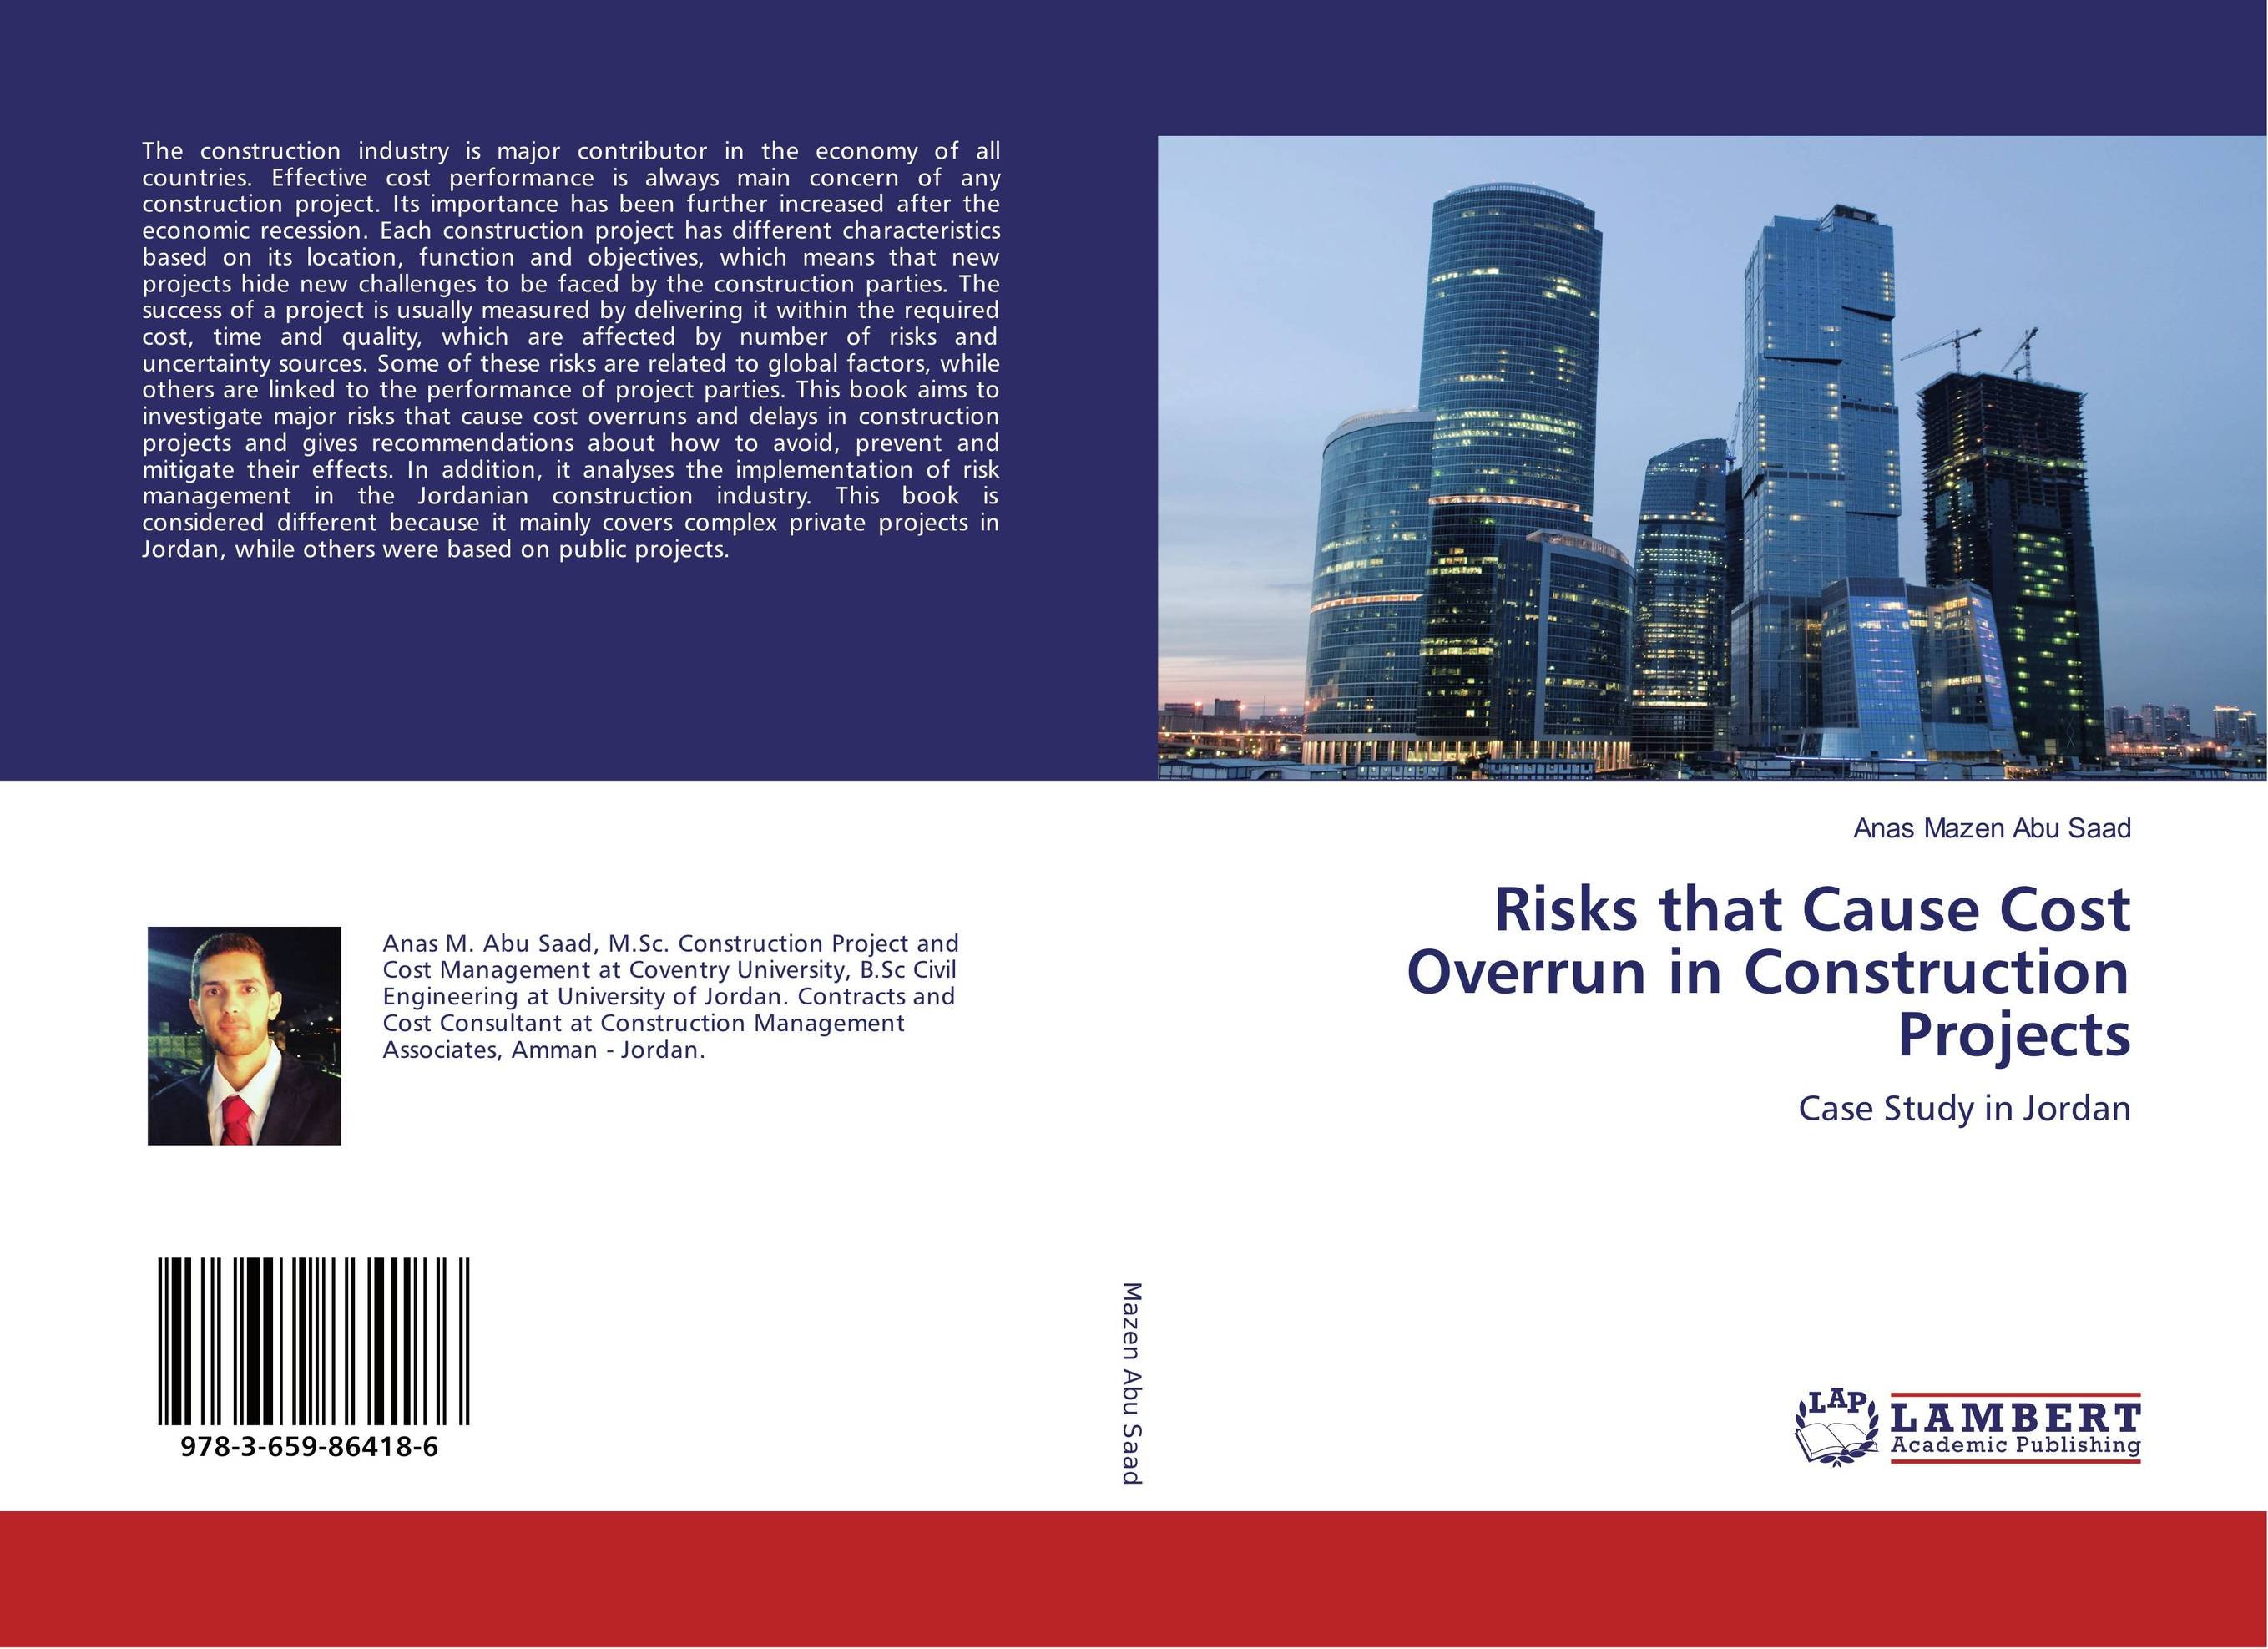 Risks that Cause Cost Overrun in Construction Projects case studies in troubled construction projects